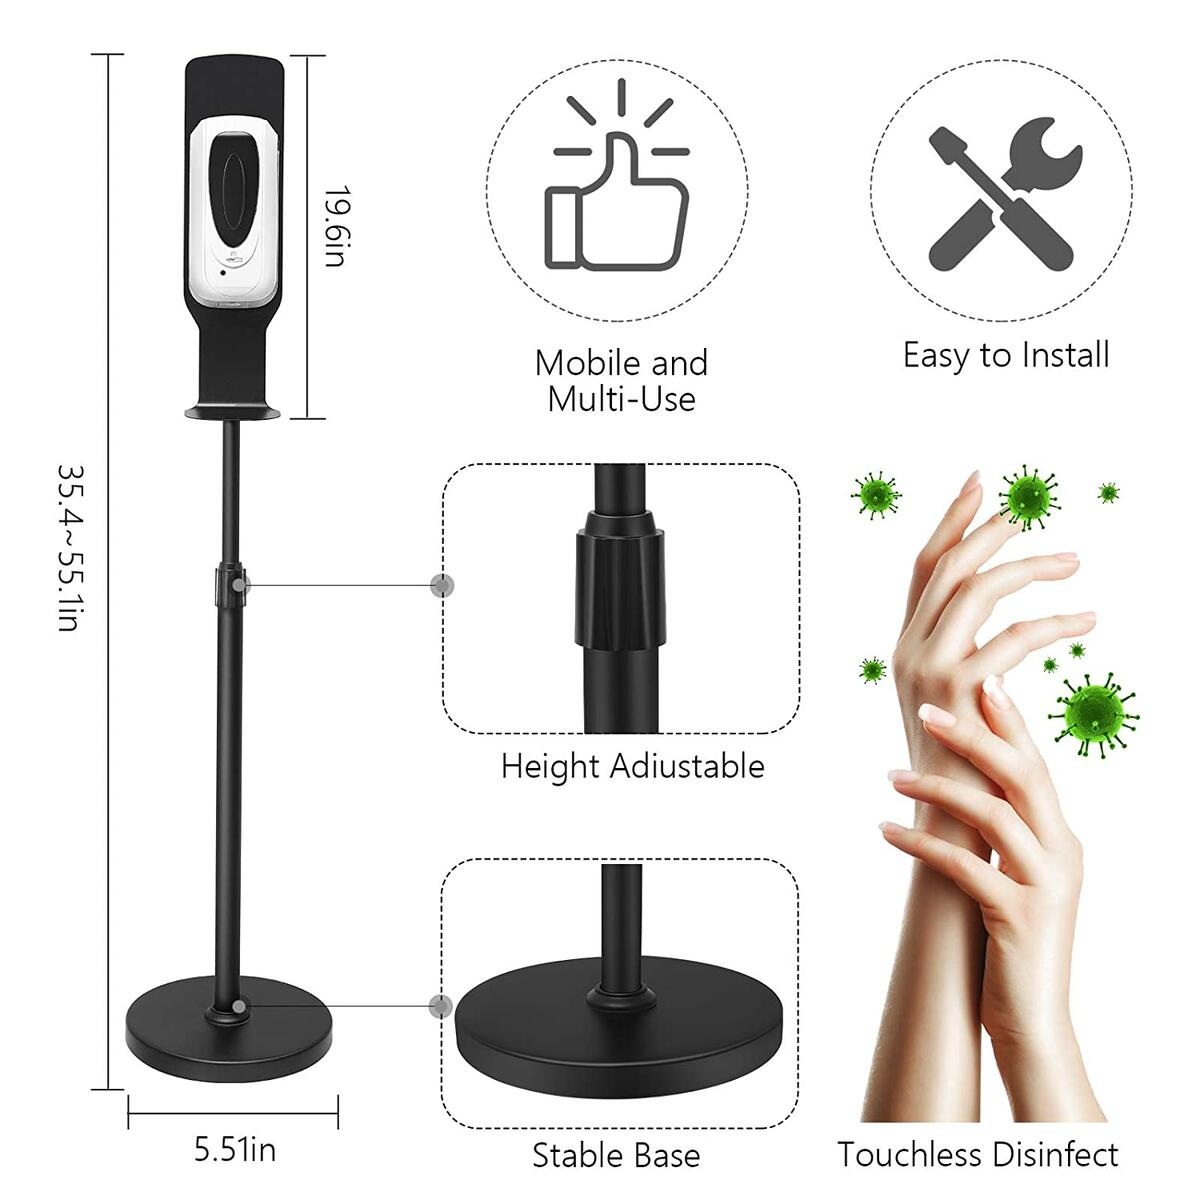 Automatic Hand Sanitizer Soap Dispenser Station,Touchless Hand Cleaner Dispenser with Stand 1000ML Auto Alcohol Sprayer Kit 35.4-56 Inches Adjustable Mist Spray Machine for Offices Schools Shop Mall